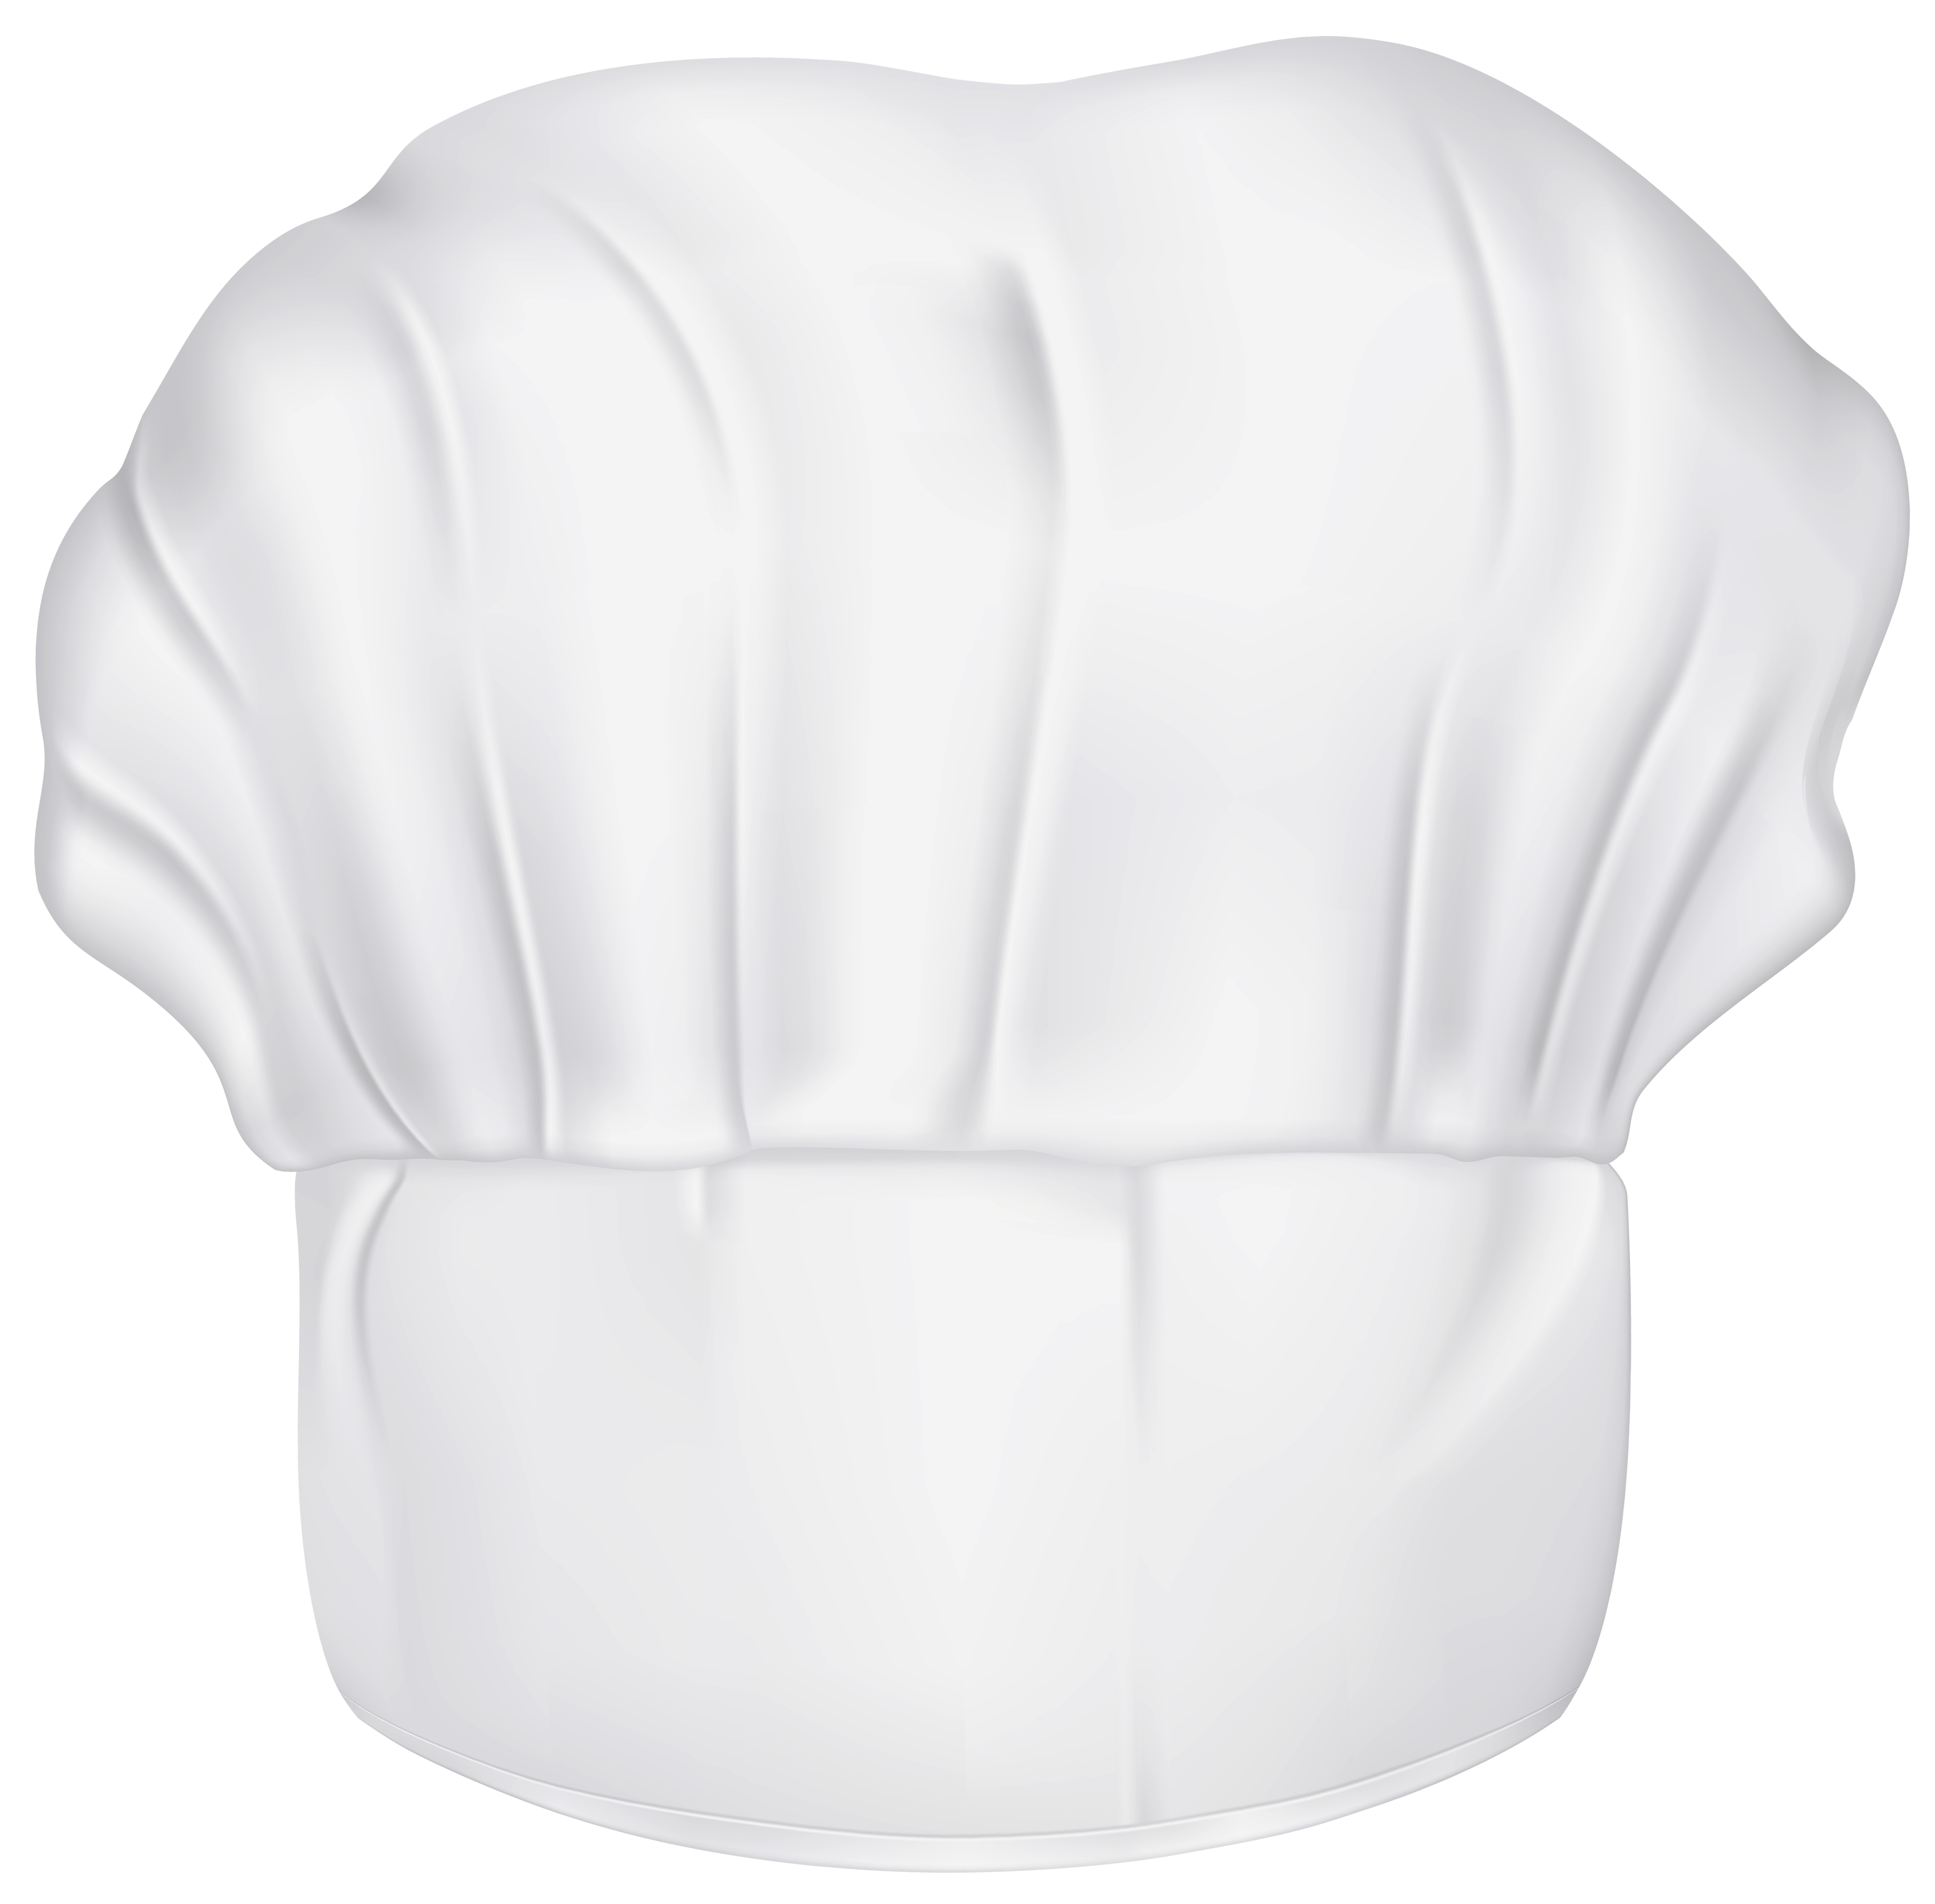 Chef clipart chef tool. Hat png best web